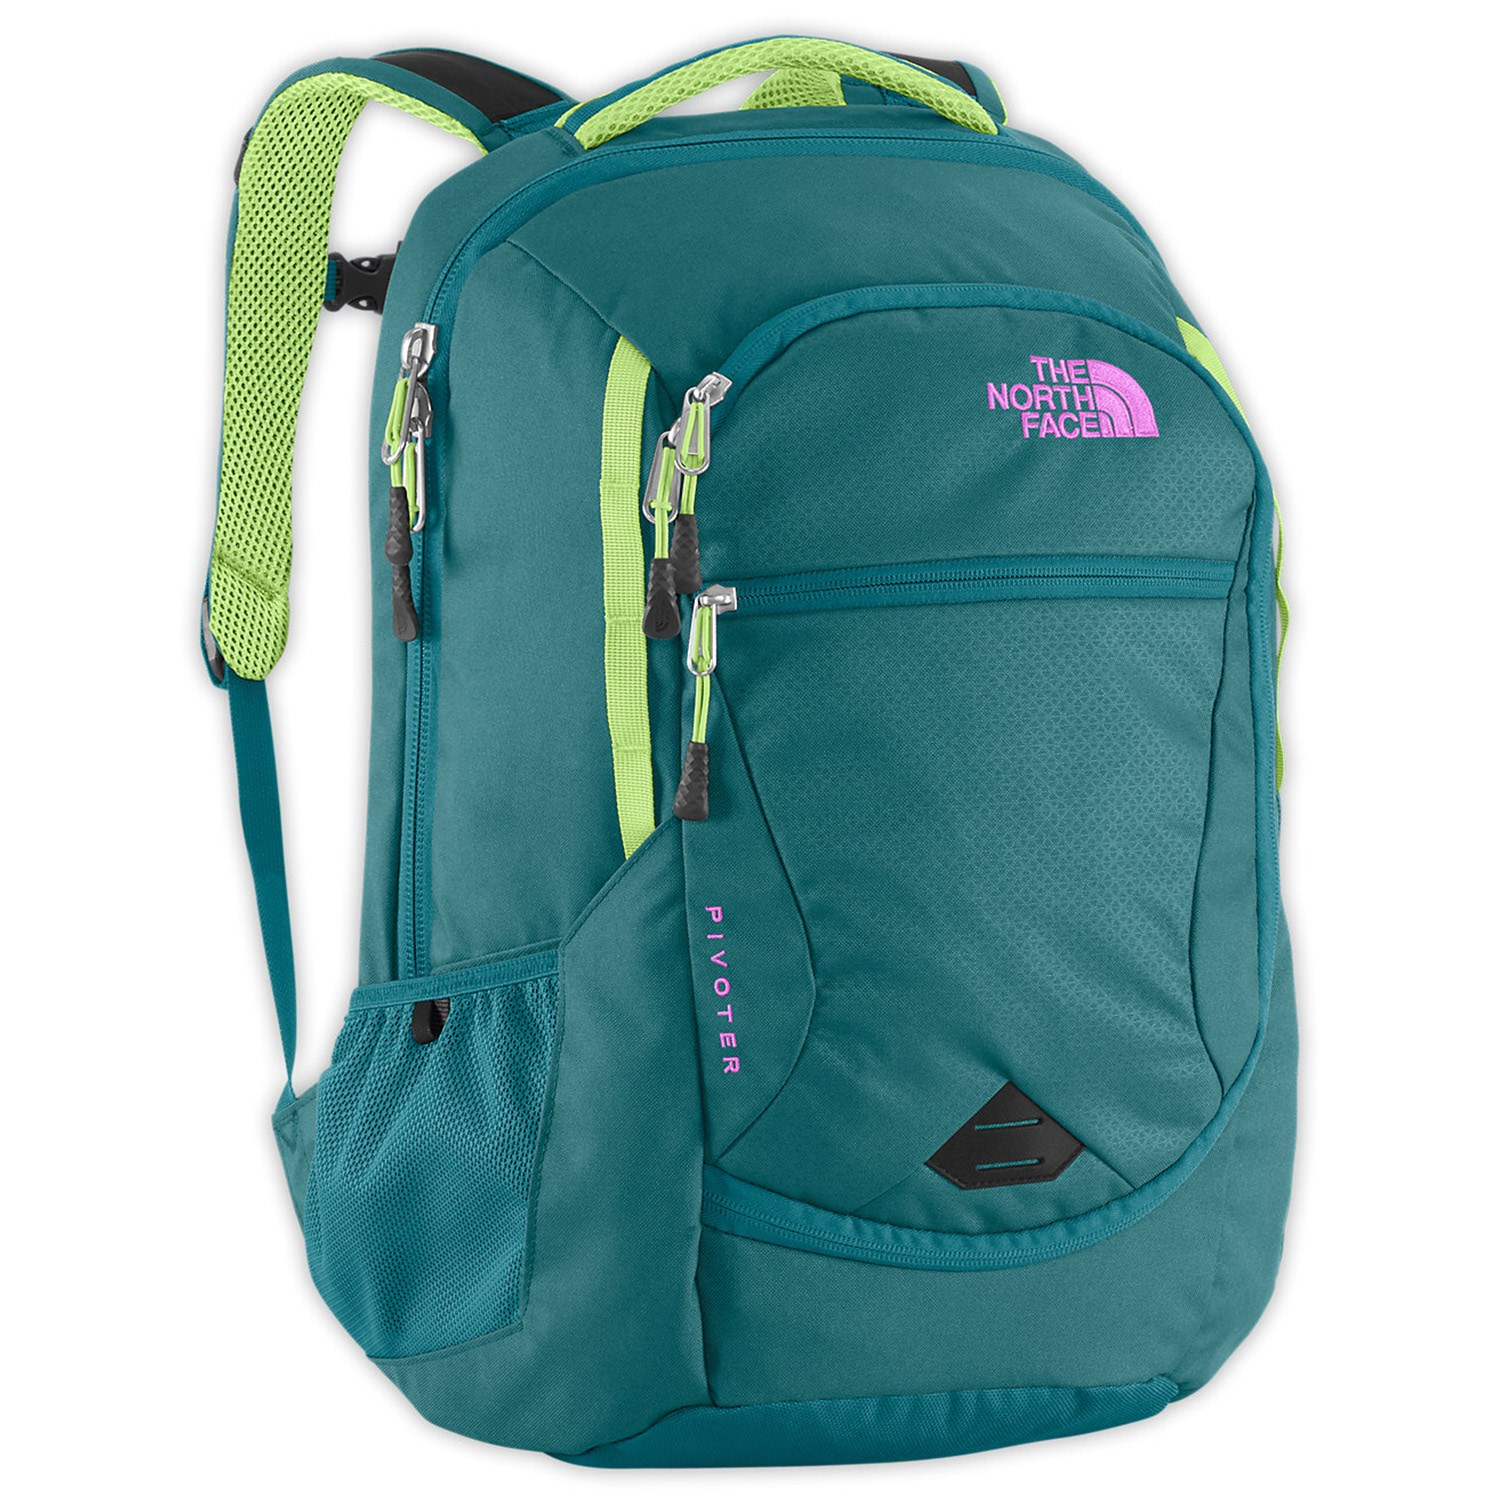 8332e628d5 The North Face Pivoter Backpack - Women s